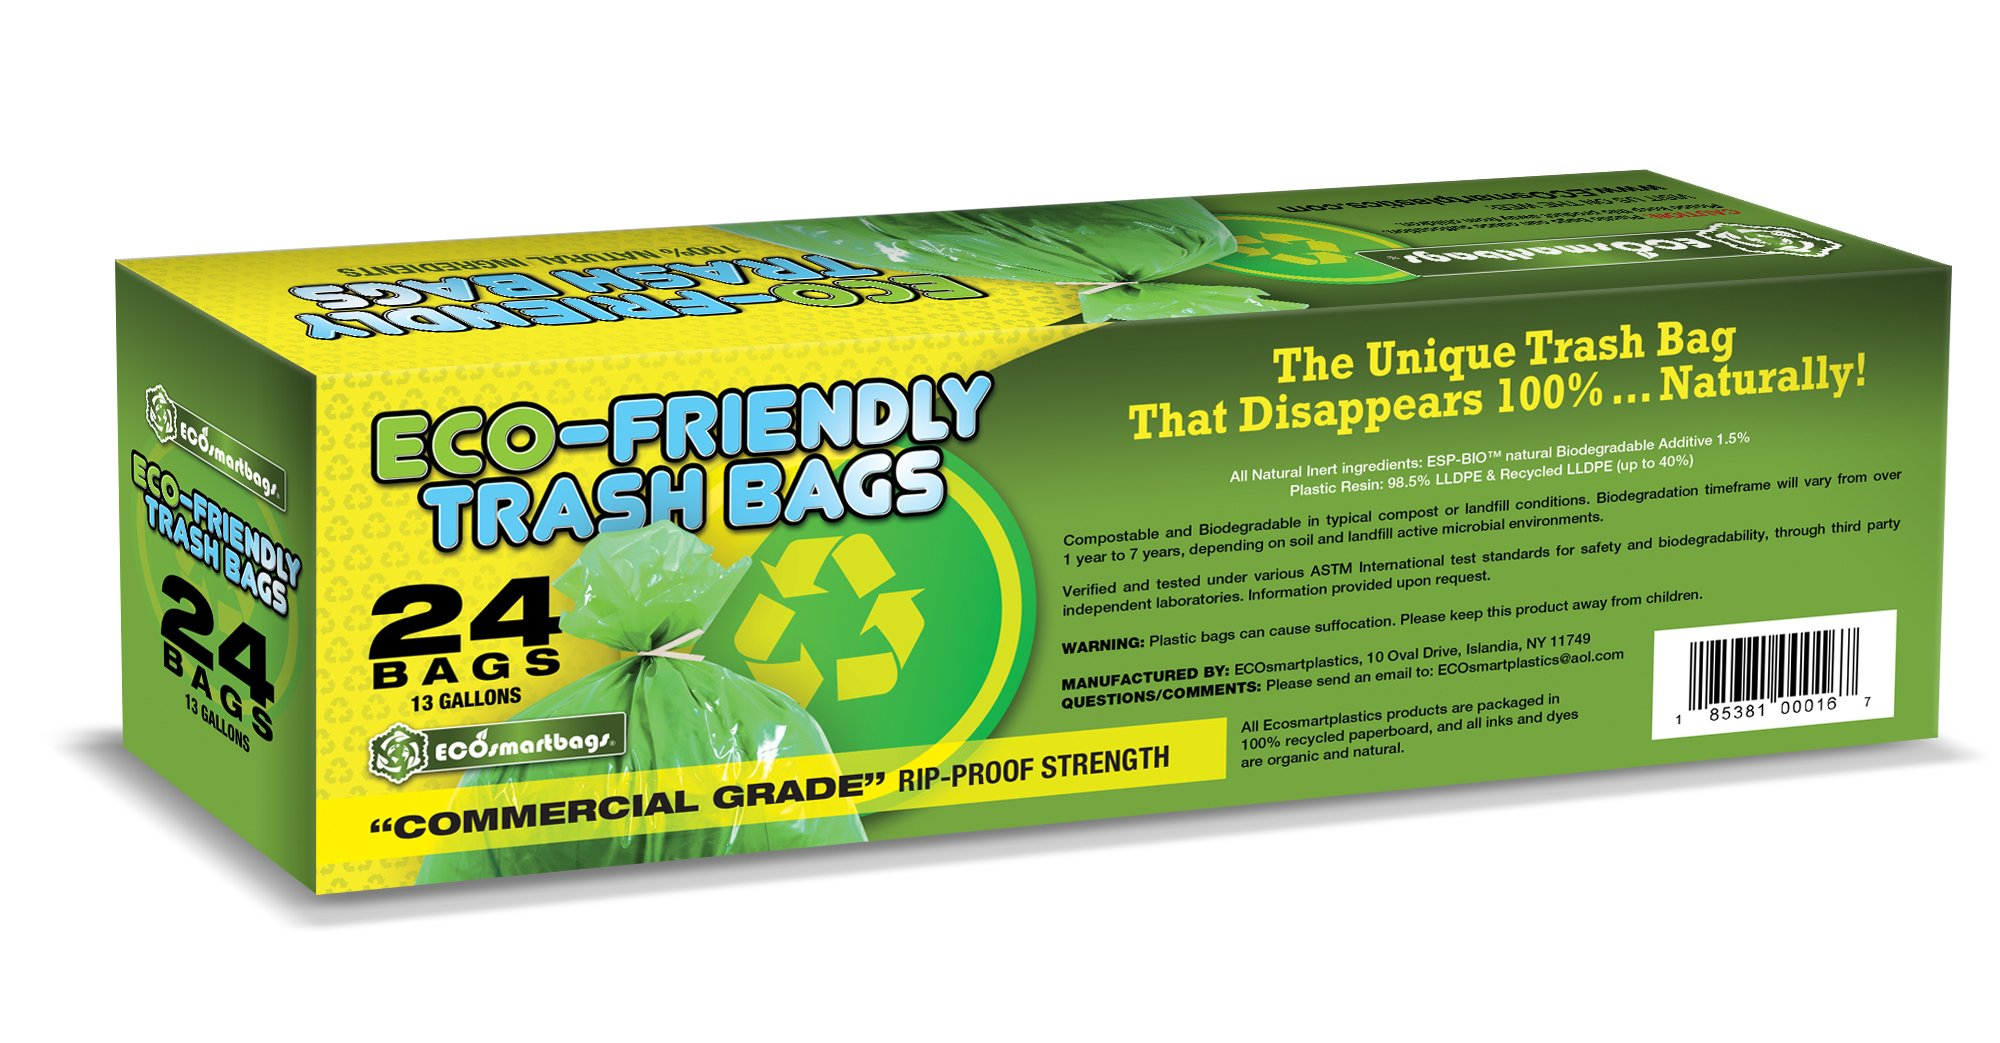 Eco-Smartbags Biodegradable Trash Bags, 13-Gallon, 24-Count Boxes (Pack of 6) by Eco-Smartbags